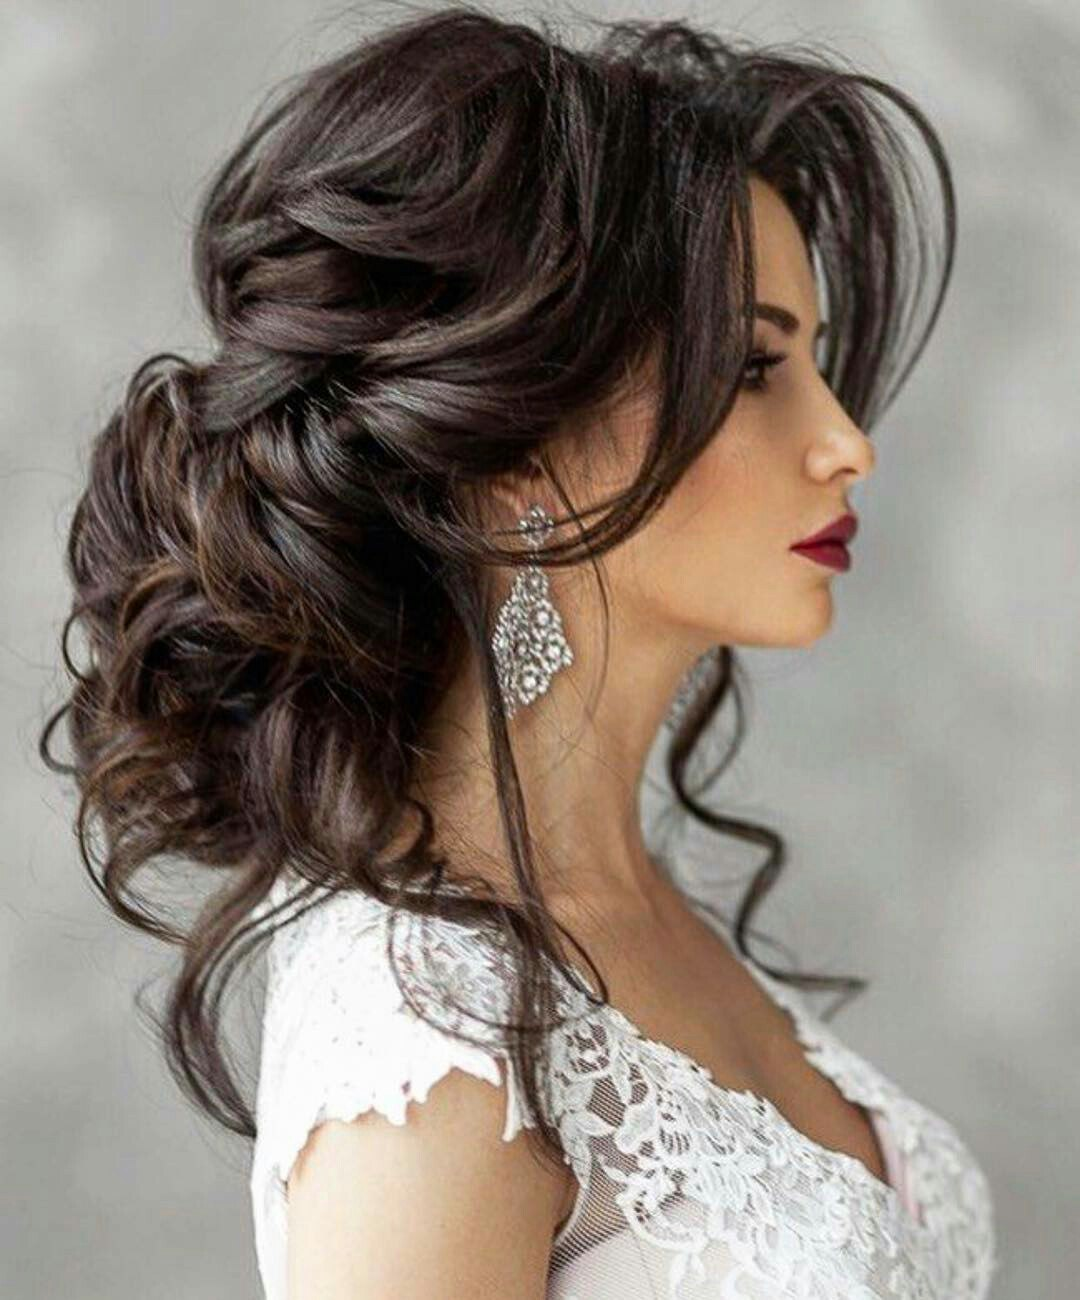 Hairstyles For Girls For Wedding: Greek Hairstyles: Grecian Hairstyle Ideas For Women